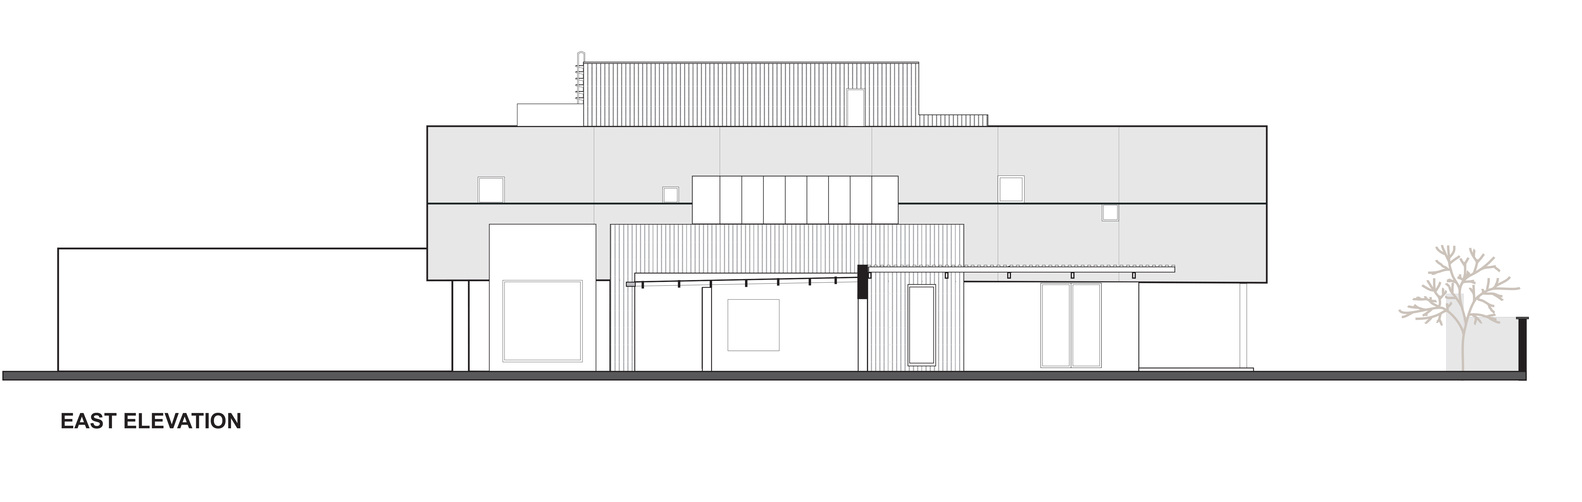 hight resolution of the wolf house east elevation